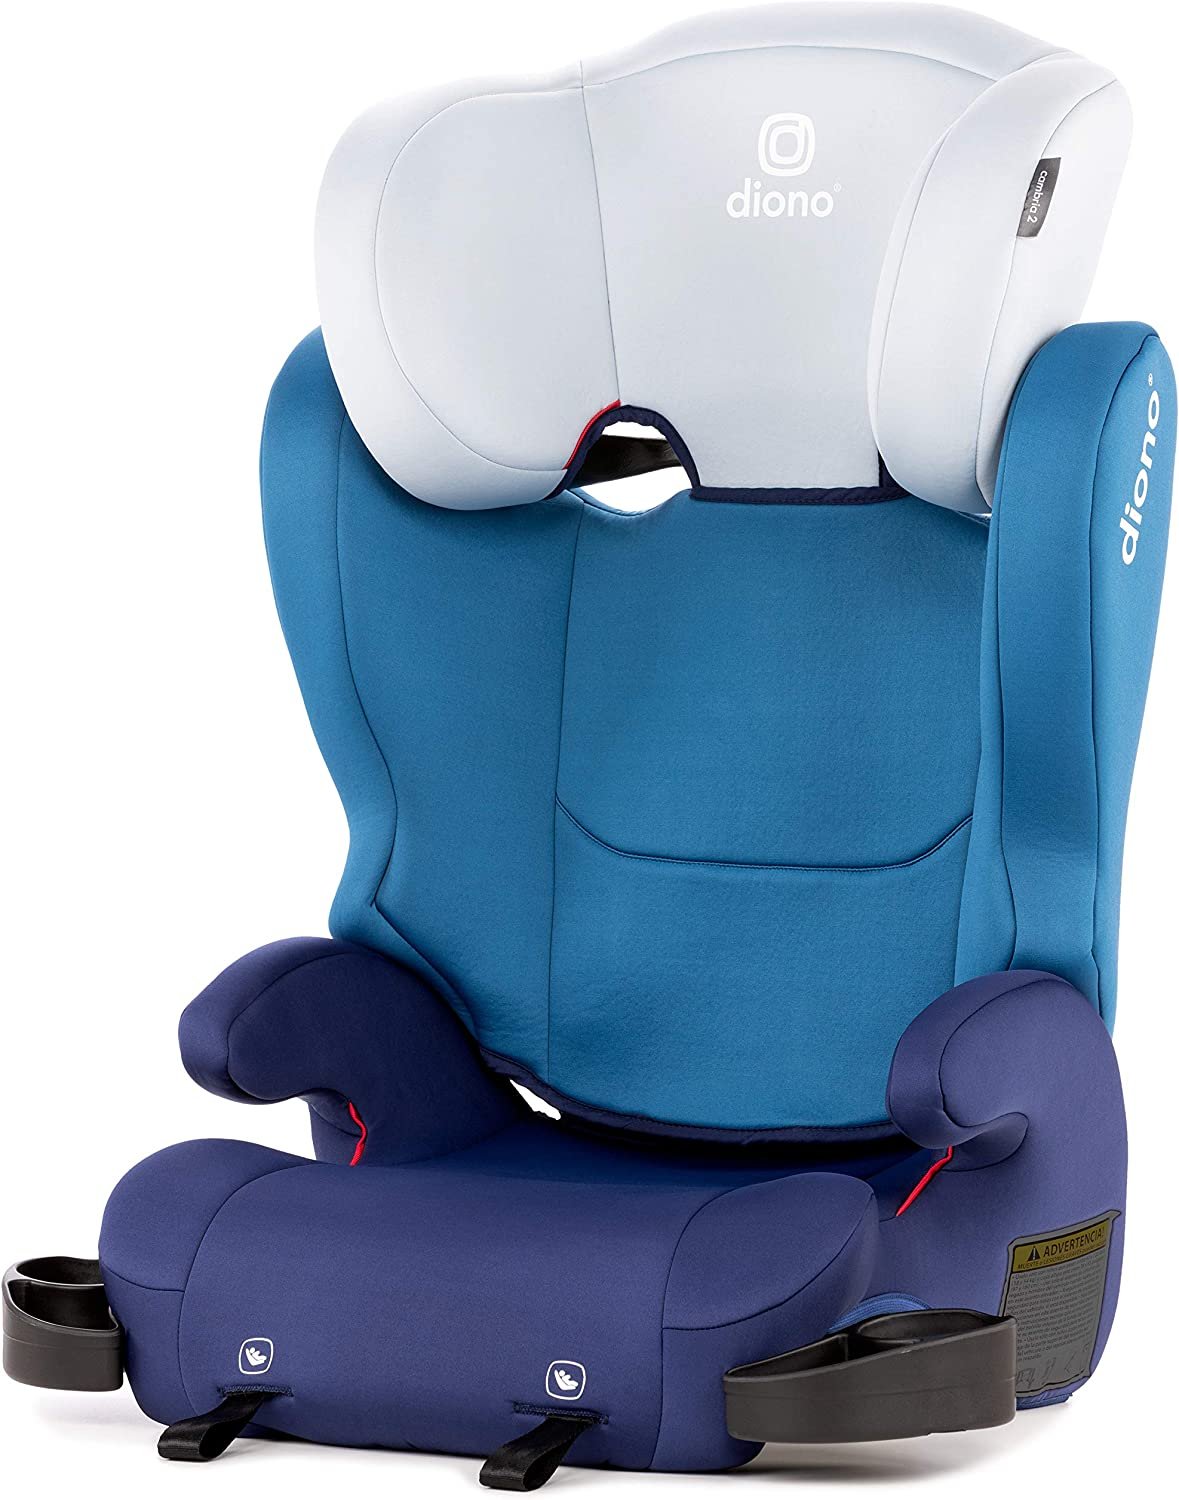 Diono Cambria Booster - 2-In-1 Car Seat - High Back and Backless Booster - Forward-Facing 40-120 Pounds - 6-Position Adjustable Headrest - Roomy Comfort for Your Big Kid - bluee